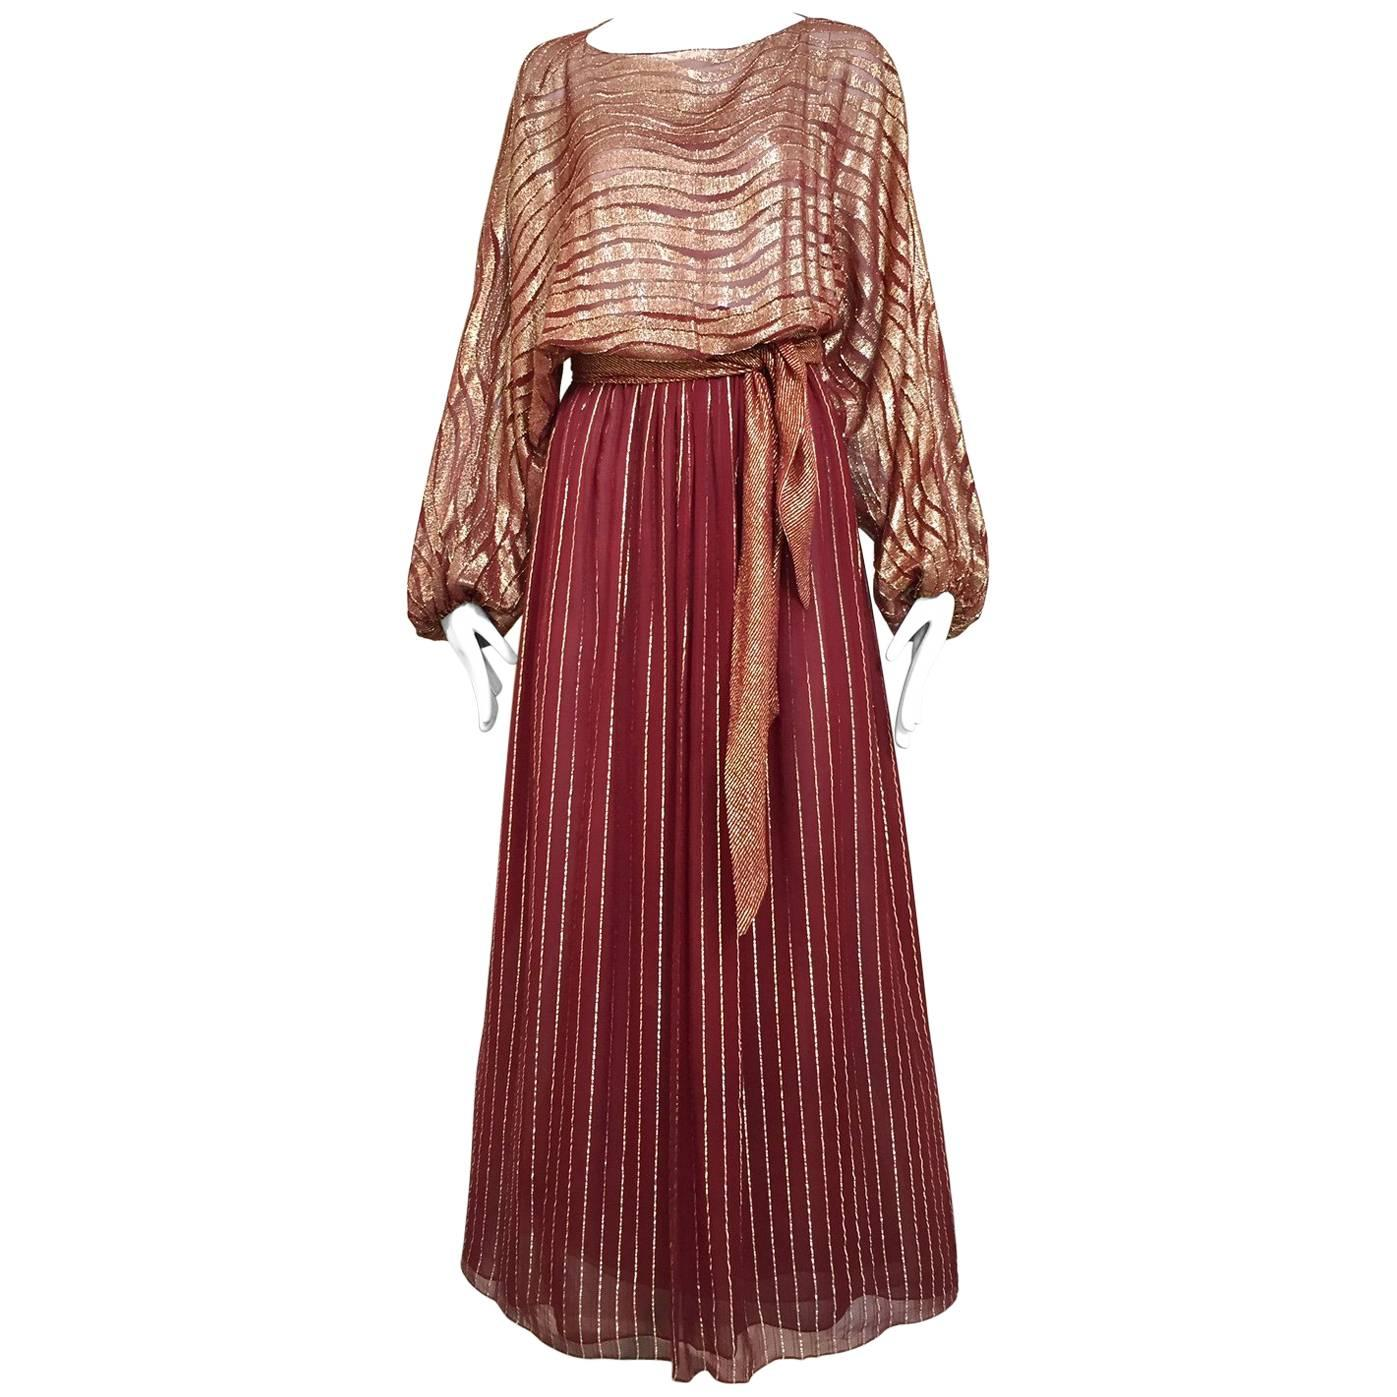 1970s BILL BLASS Burgundy Metallic Silk Maxi Dress